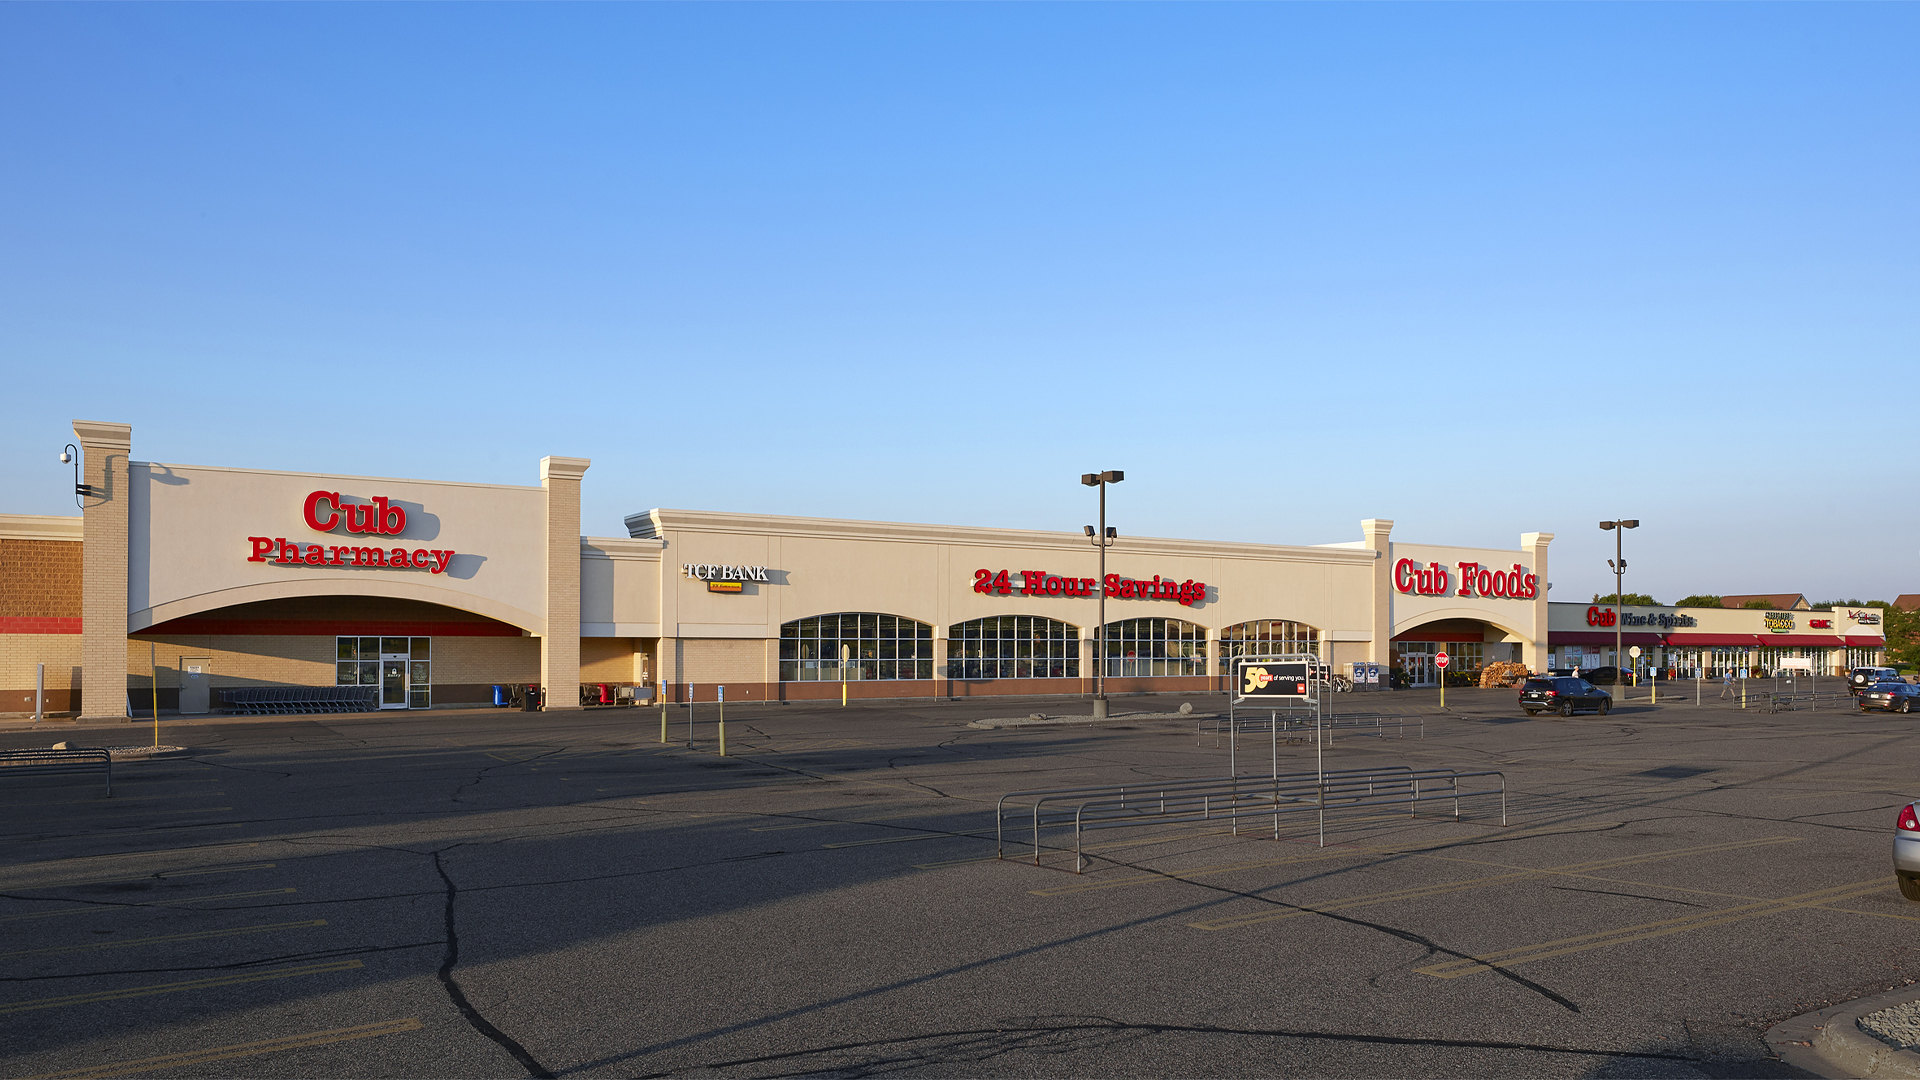 Rosemount Village Shopping Center Rosemount MN Front Elevation featuring Cub Foods